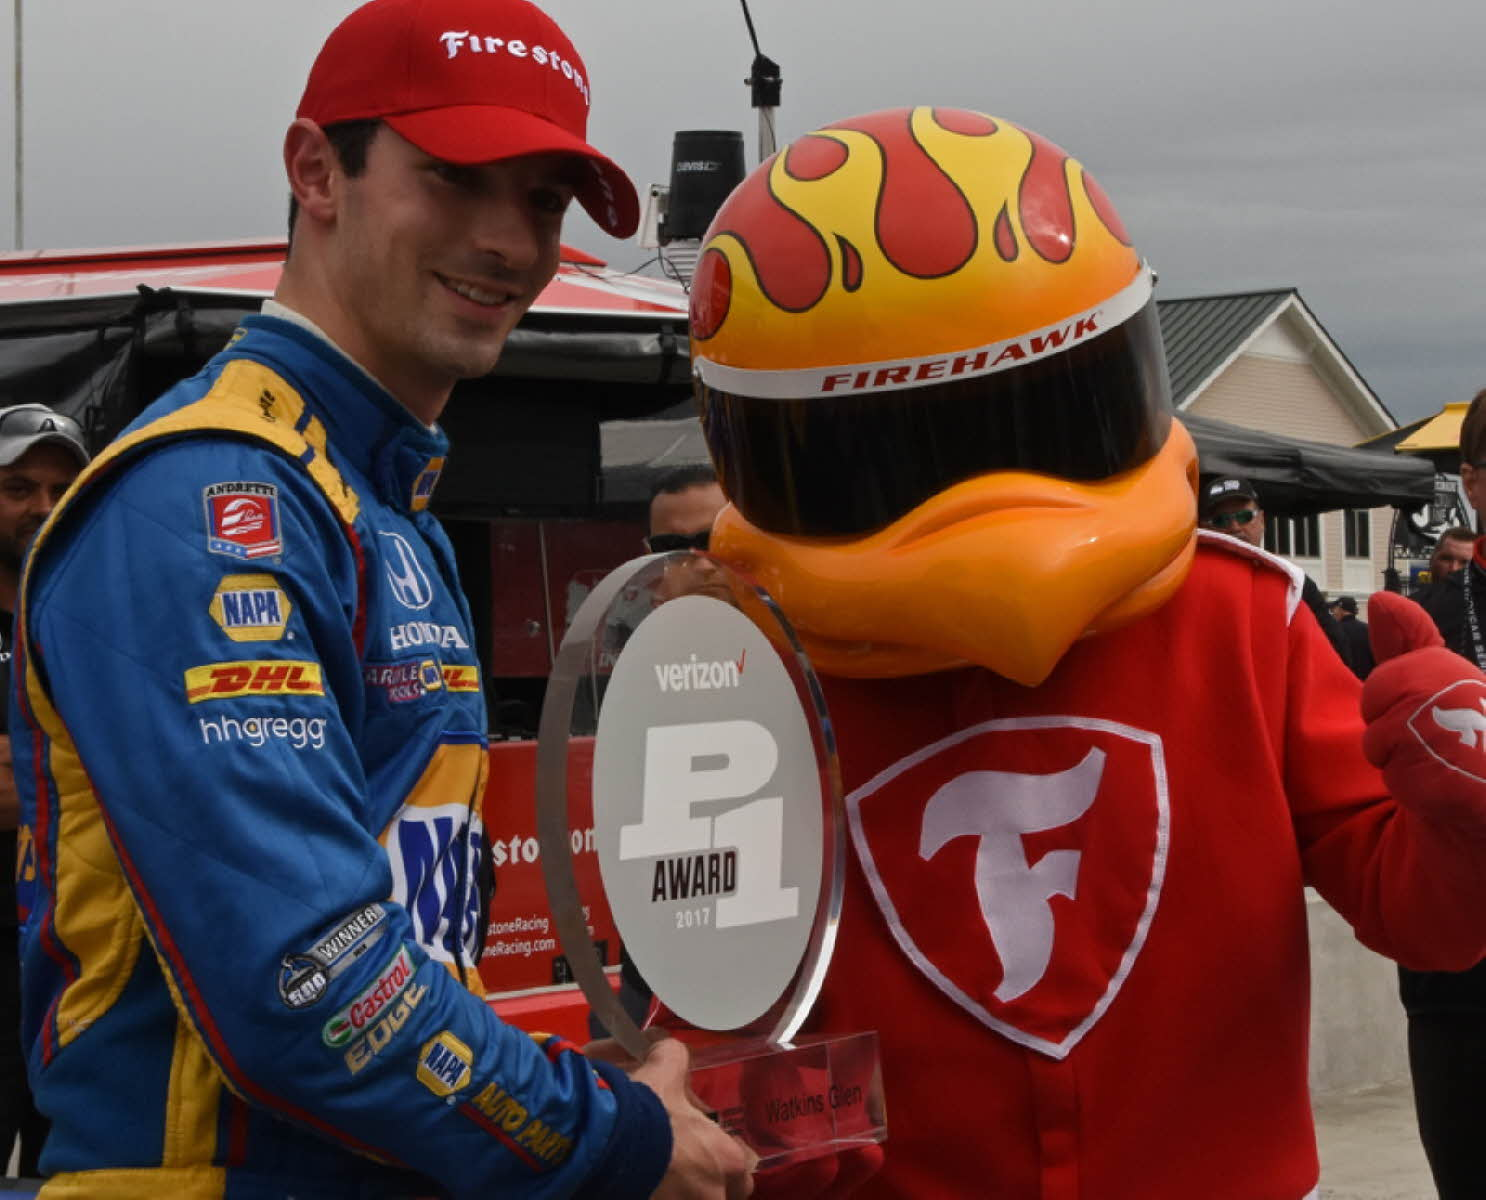 Alexander Rossi all smiles as he holds his first-ever Verizon P1 pole award. [Joe Jennings Photo]